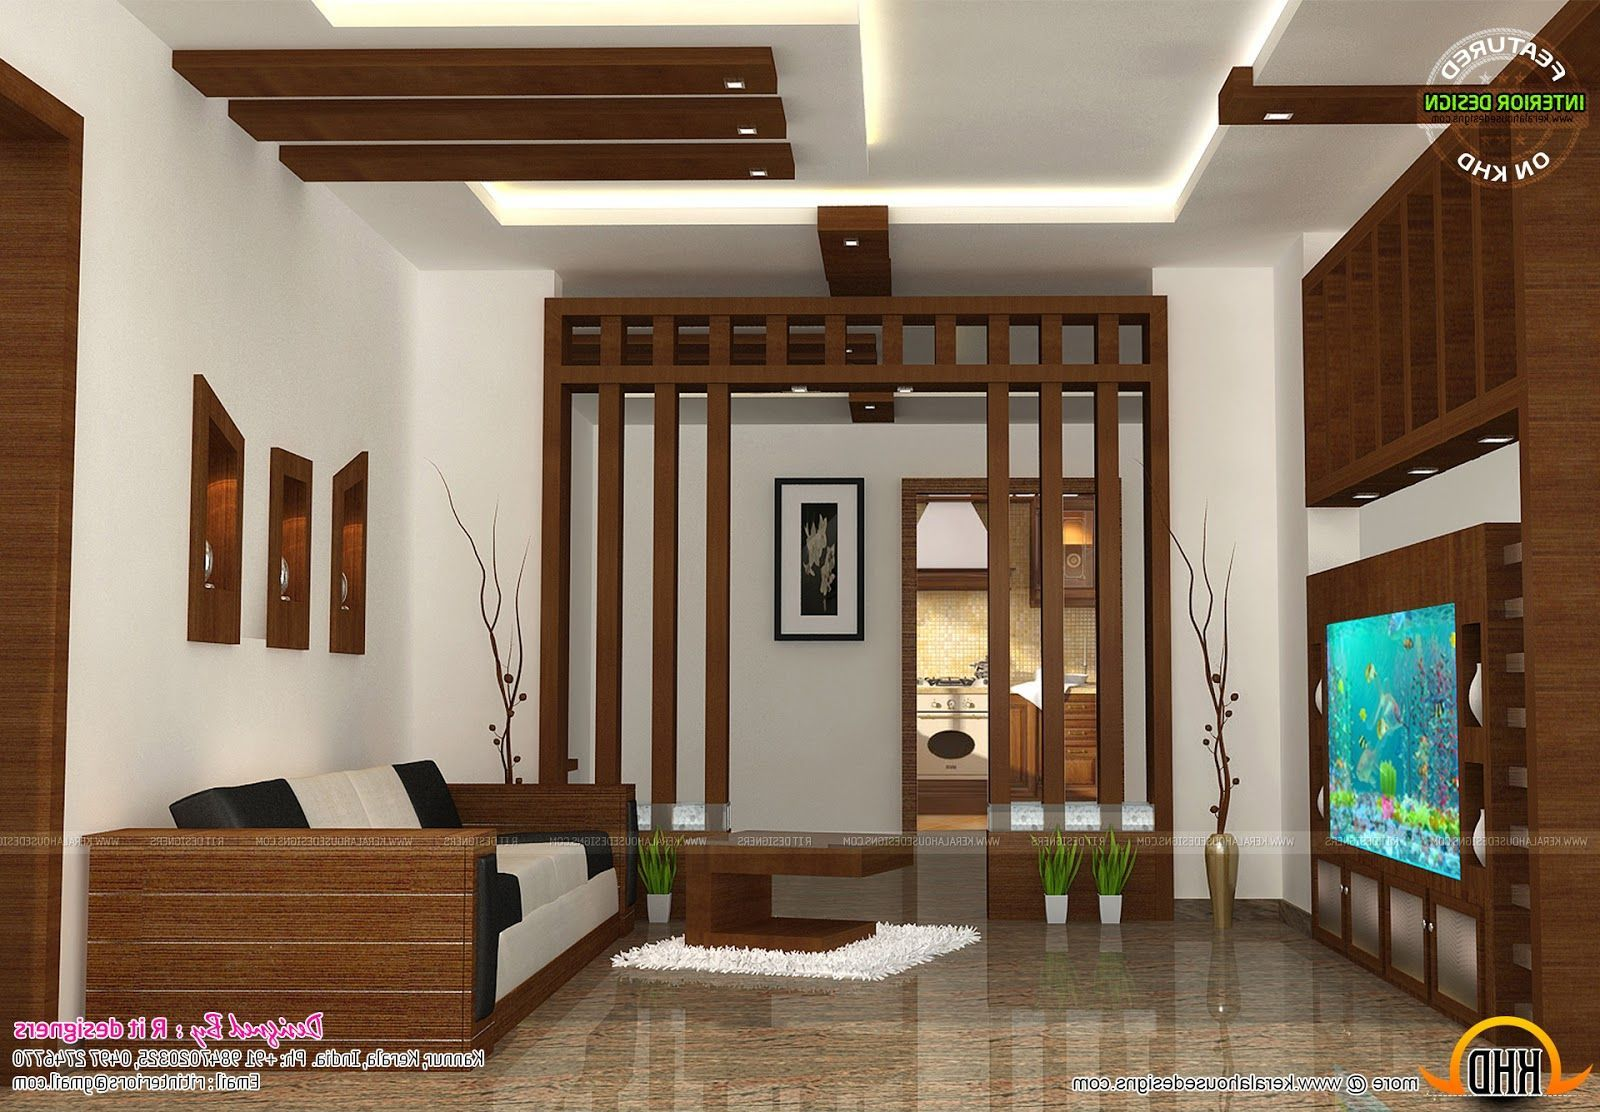 Interior design living room kerala apartment living room - House interior design pictures living room ...